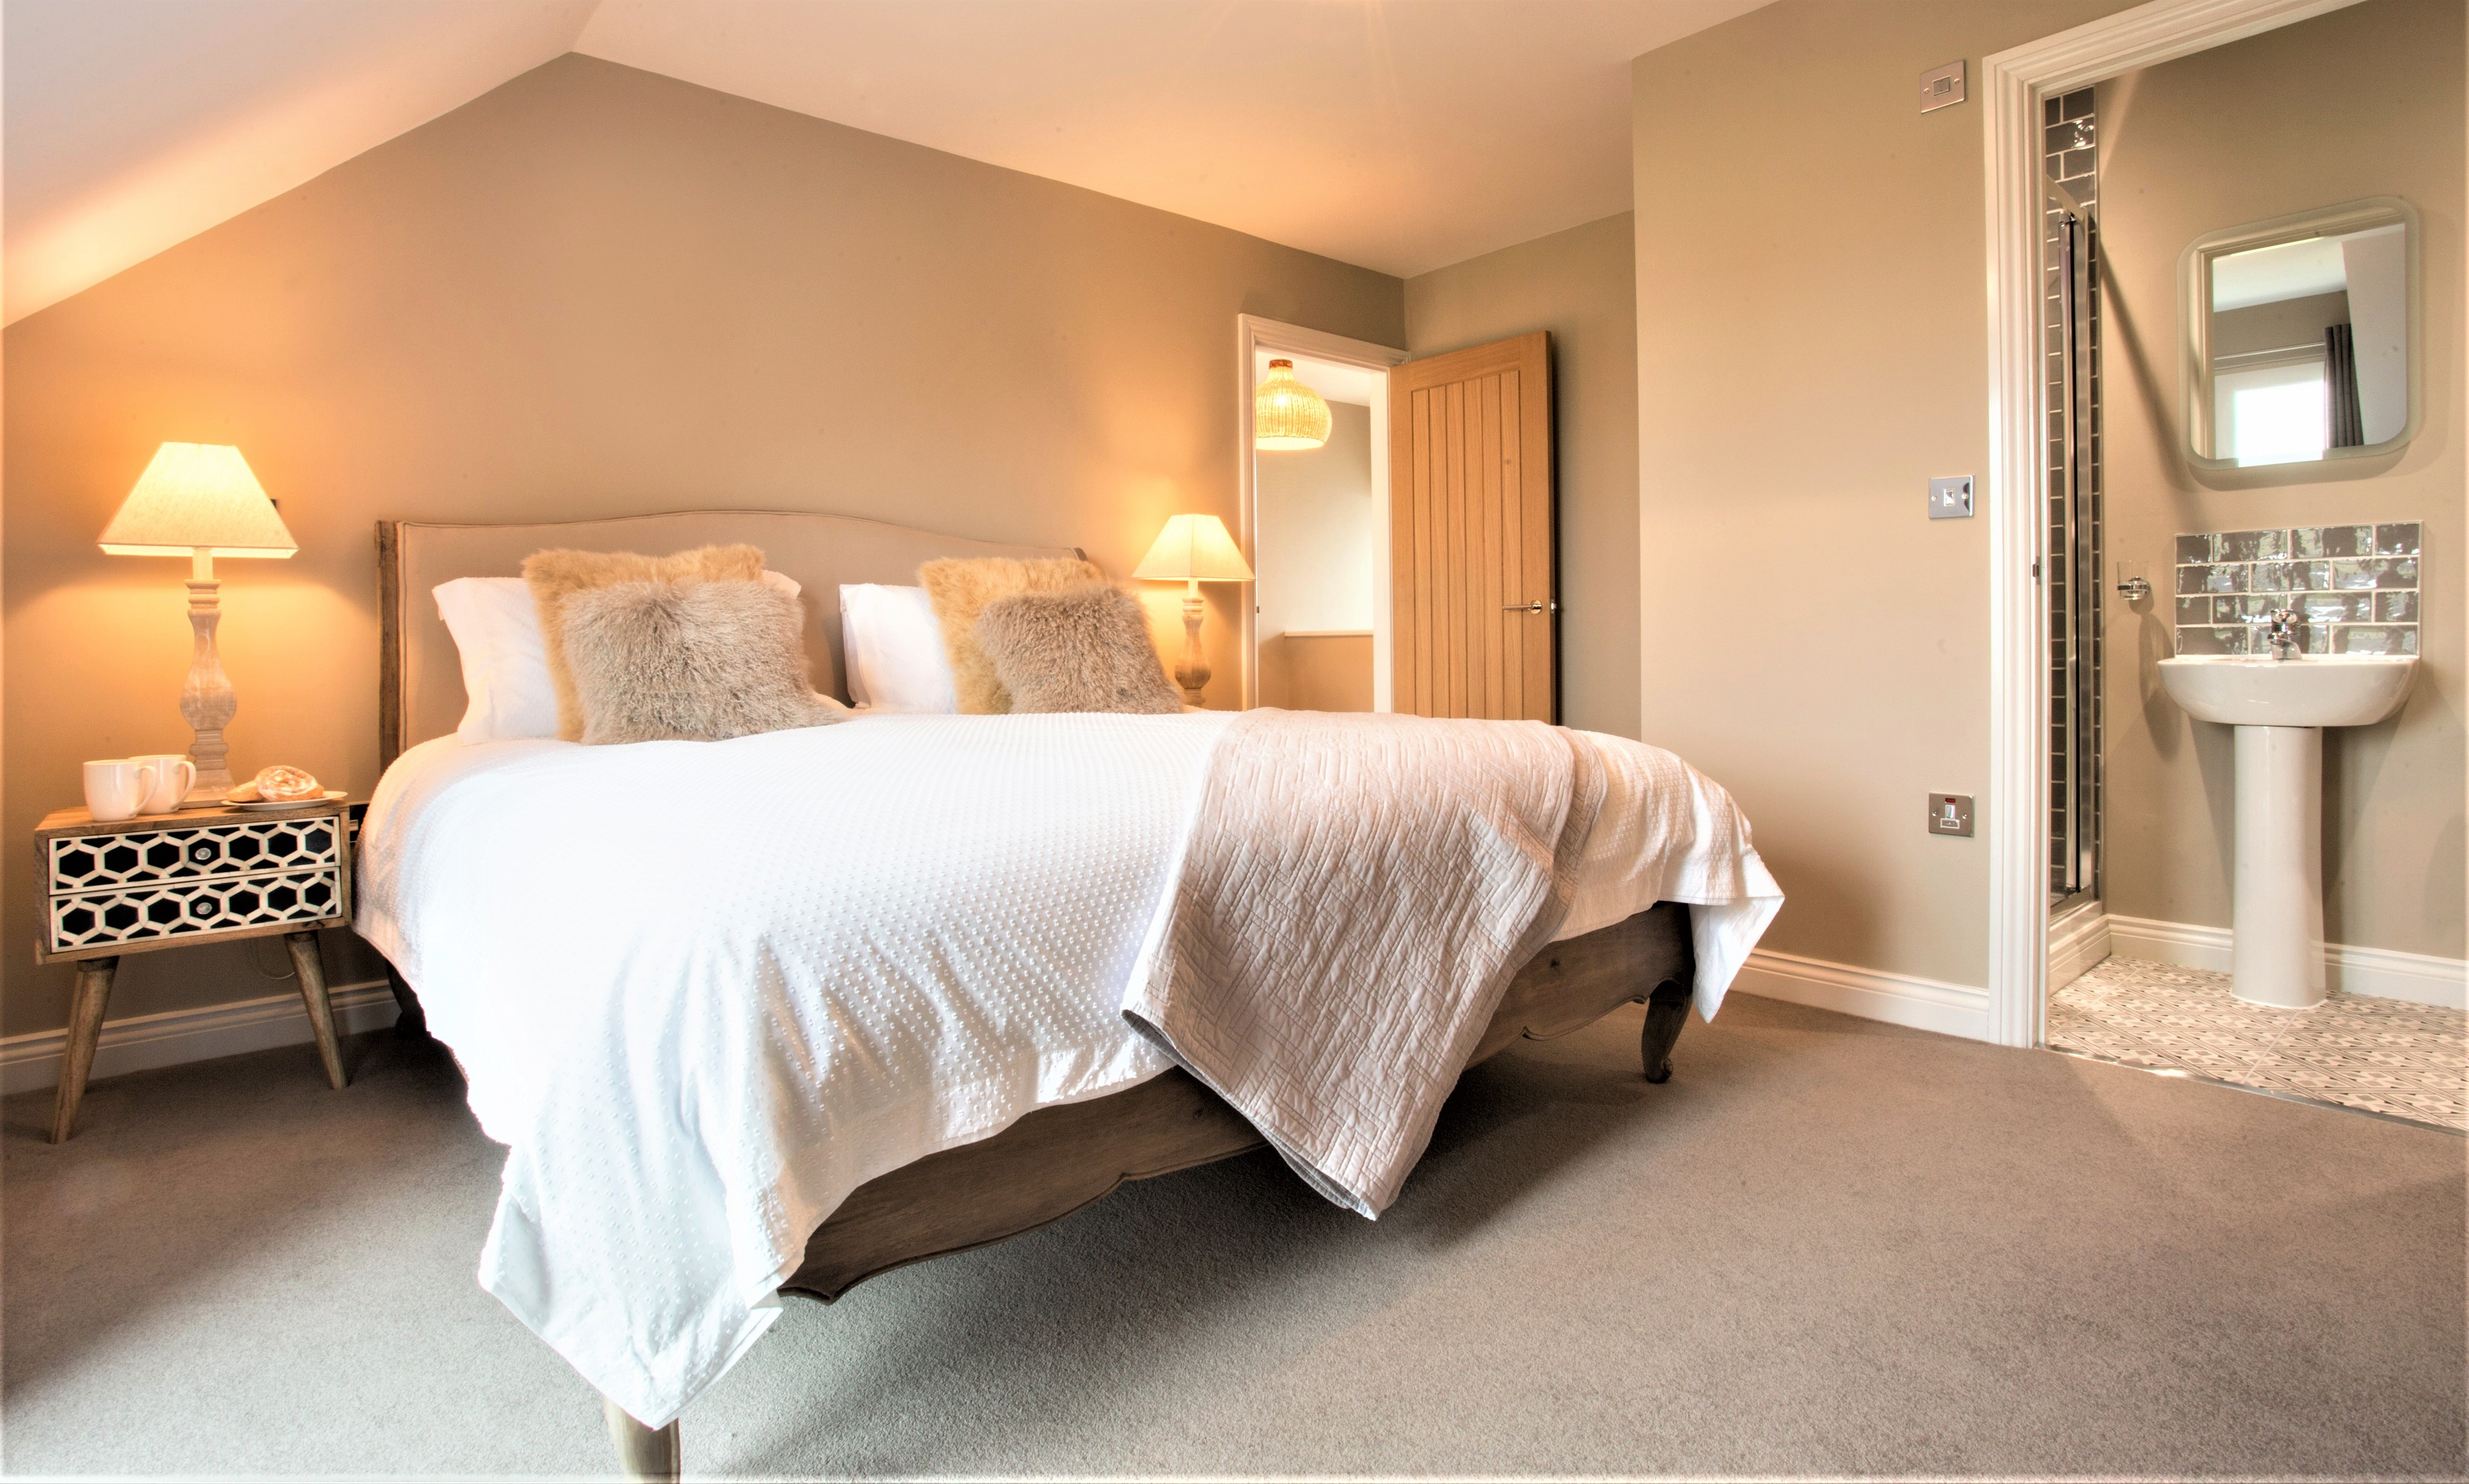 gorgeous holiday homes around Northumberland in Beadnell, cottages in Beadnell on the coast, Alnwick holiday cottages, self catering Northumberland